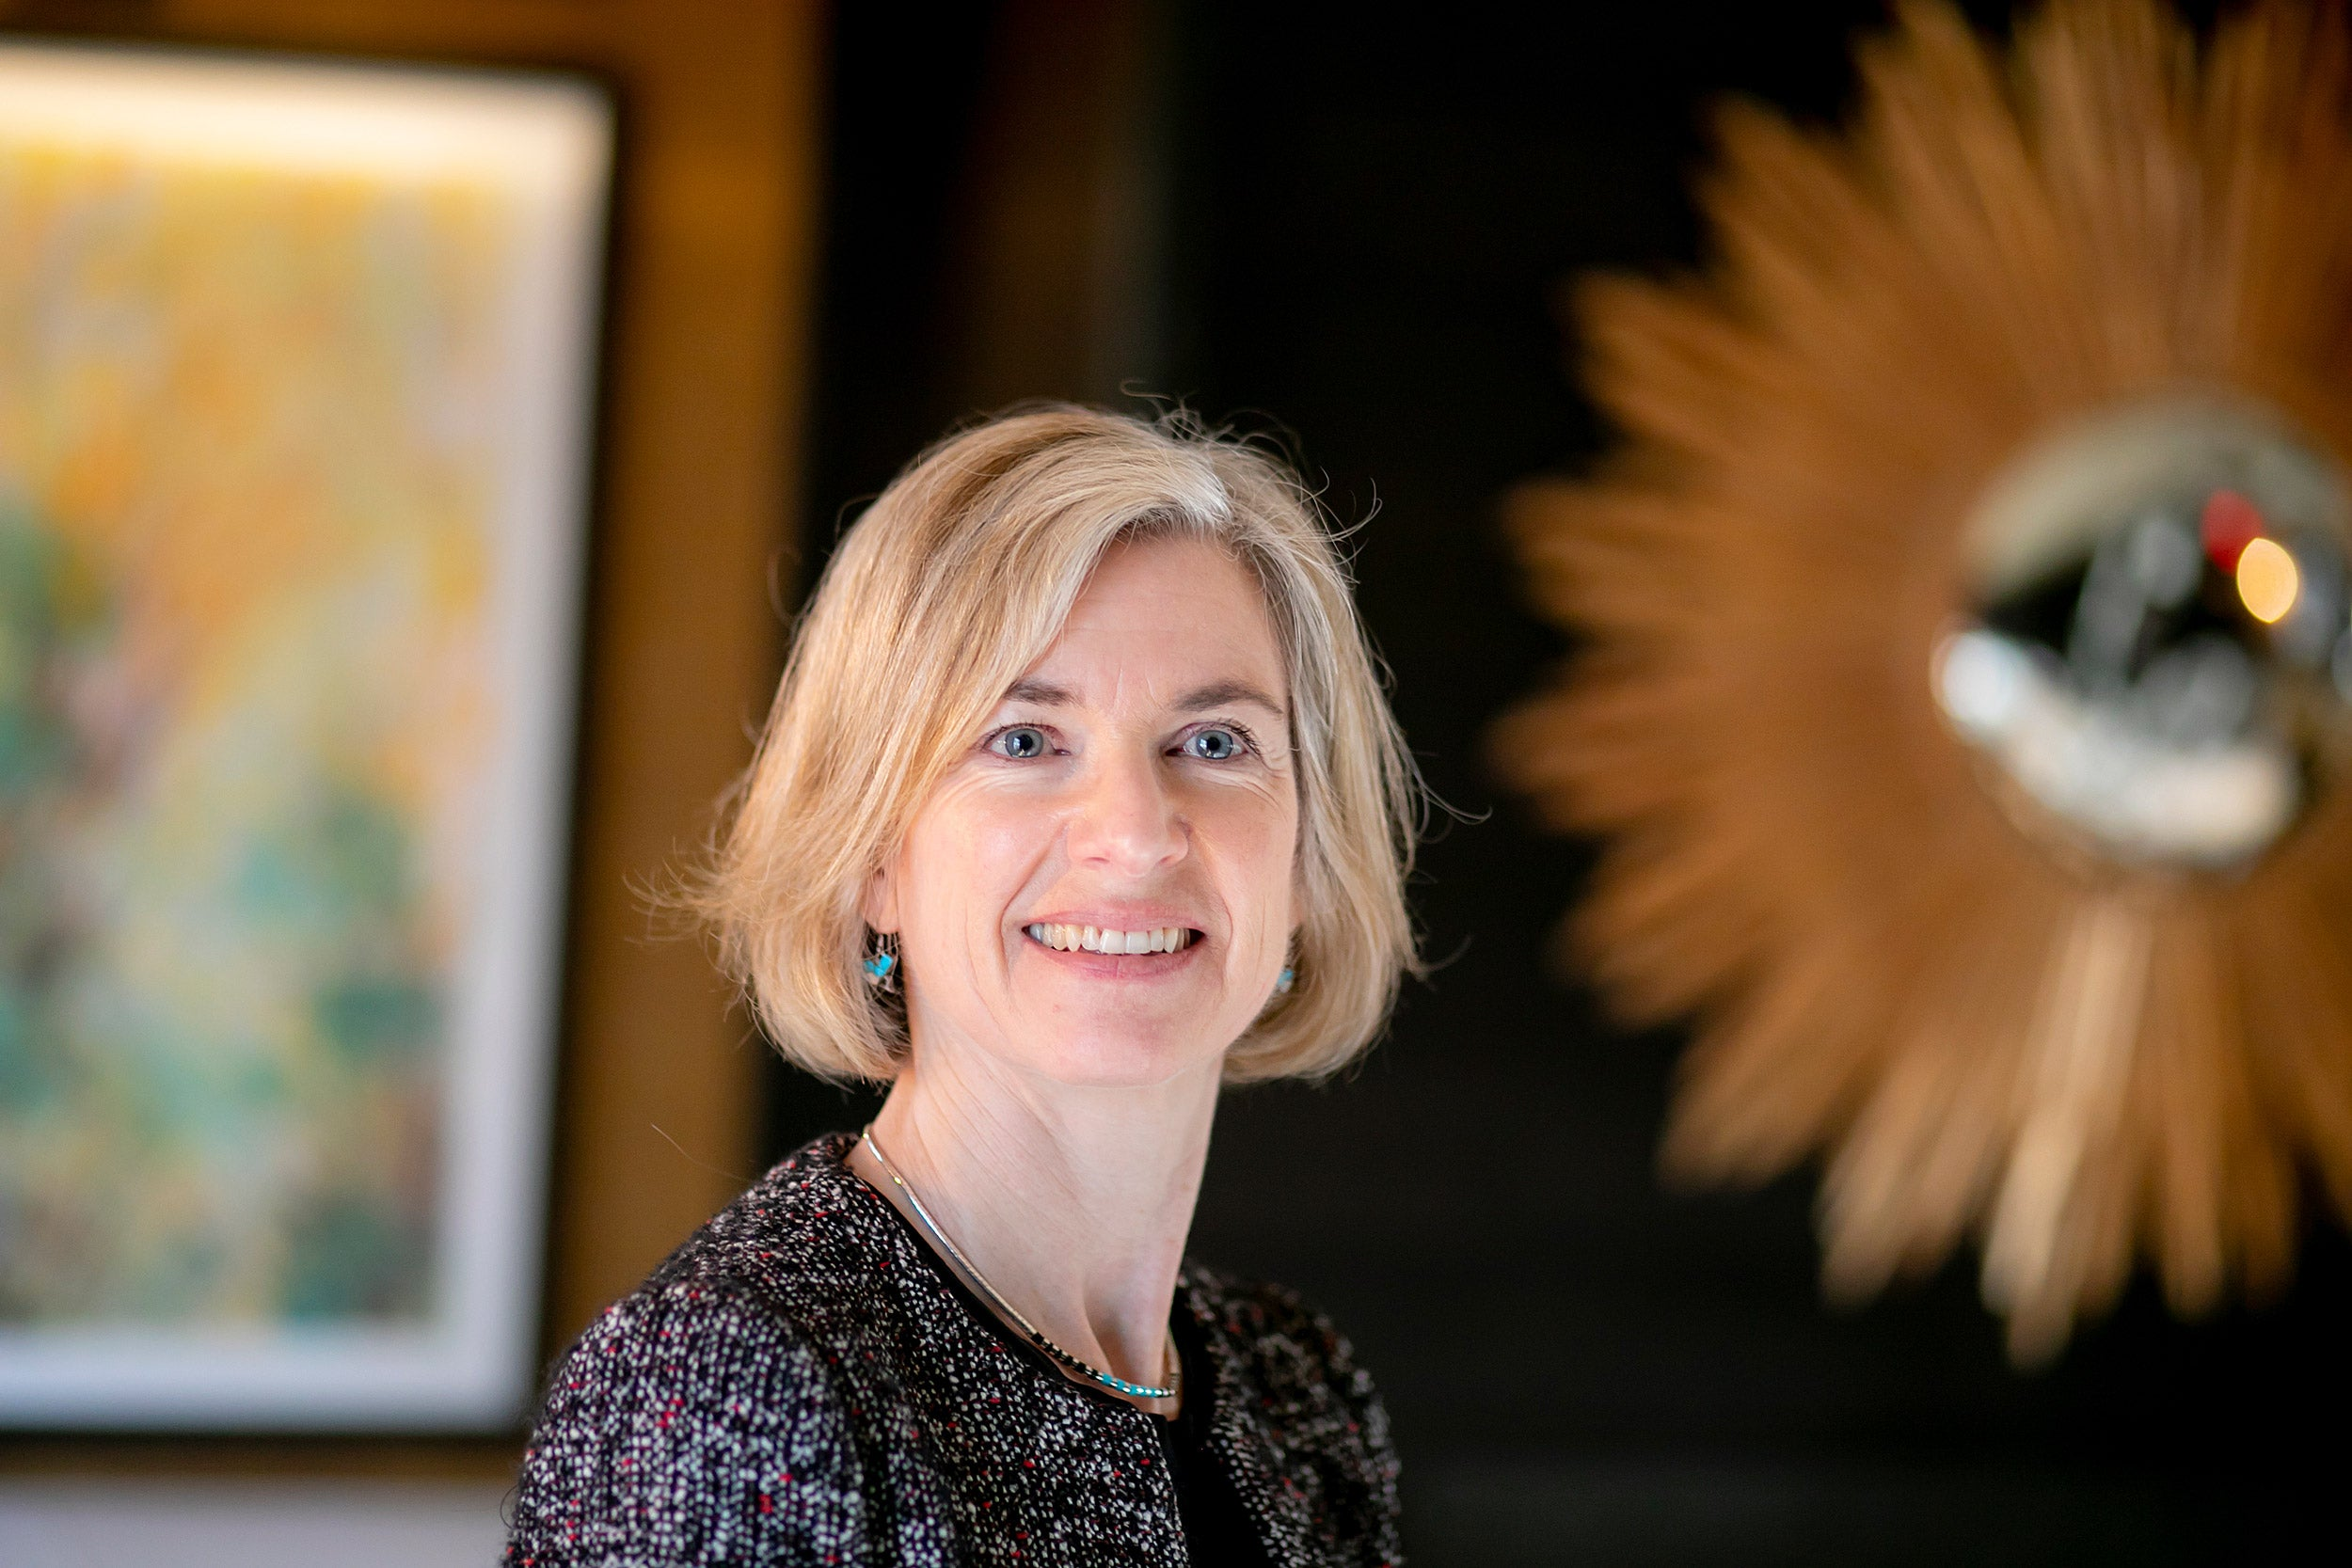 Jennifer Doudna, who first identified CRISPR/Cas9 as a gene-editing tool, delivered three lectures about the tool's rapid spread and the need for discussion about the ethics of its applications.